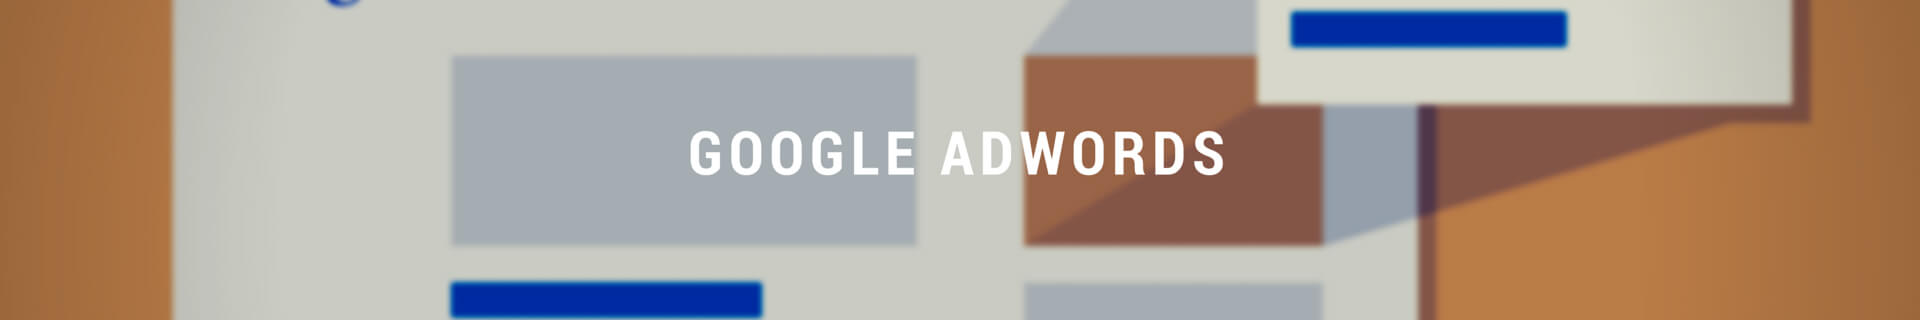 slider-google-adwords